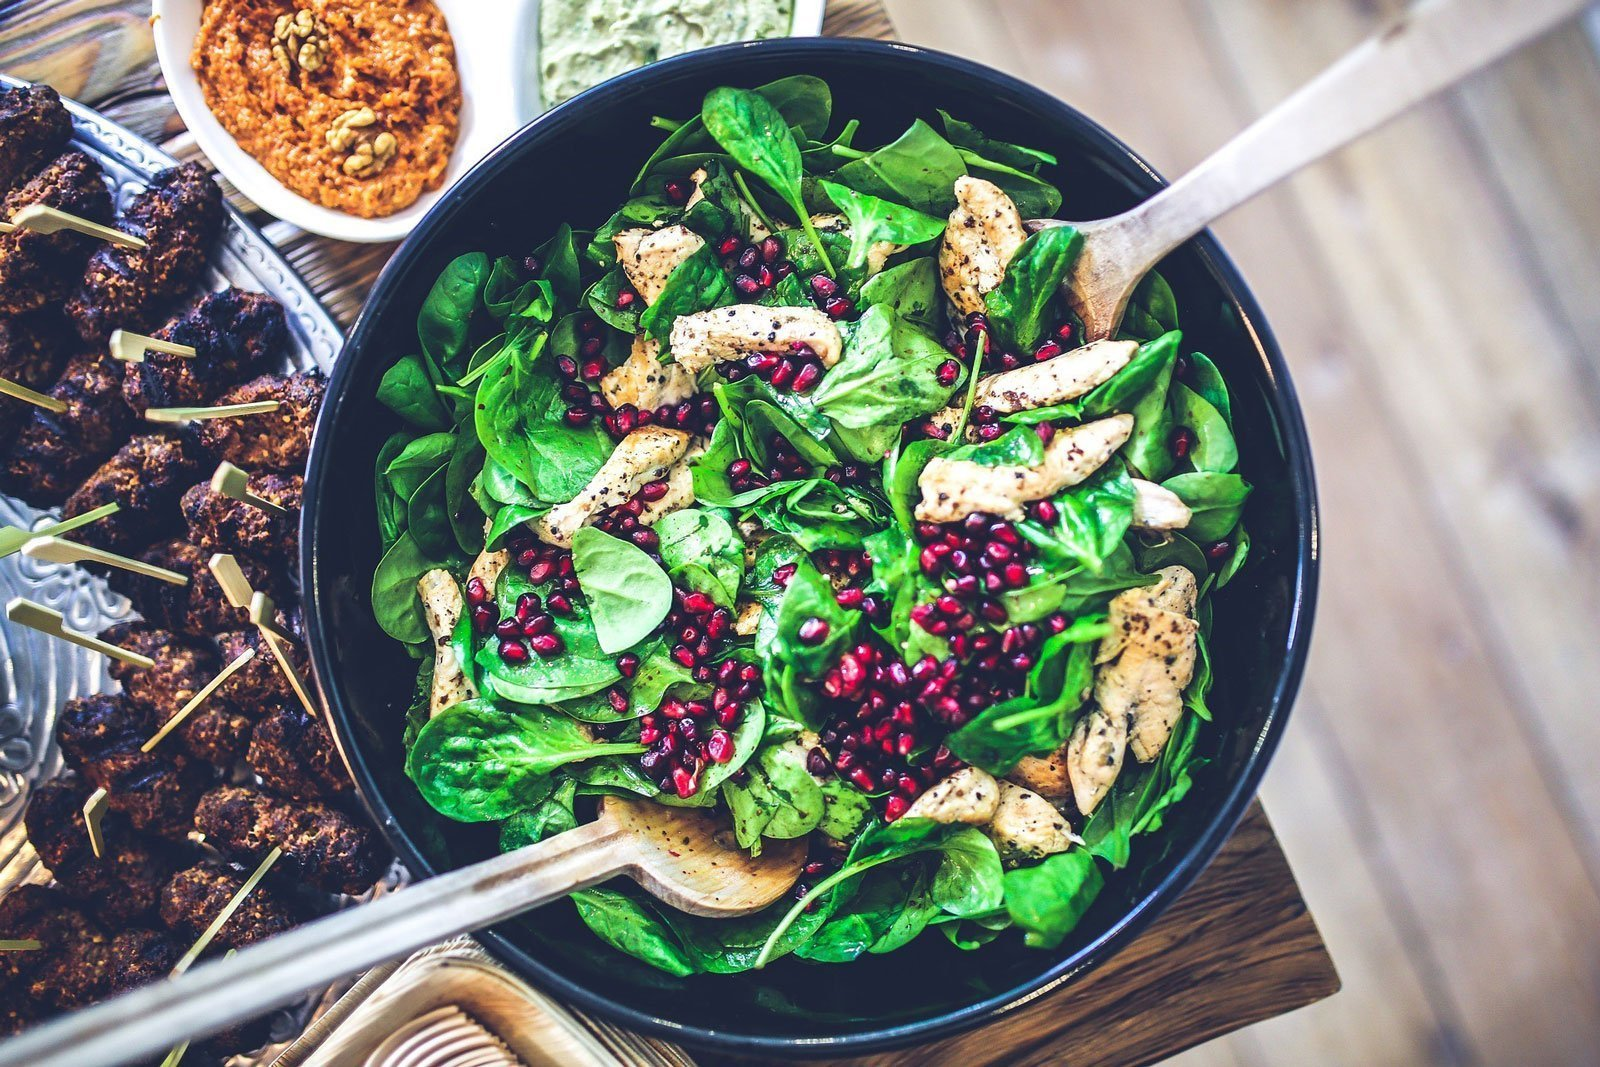 Introduction to Paleo and Keto Diets